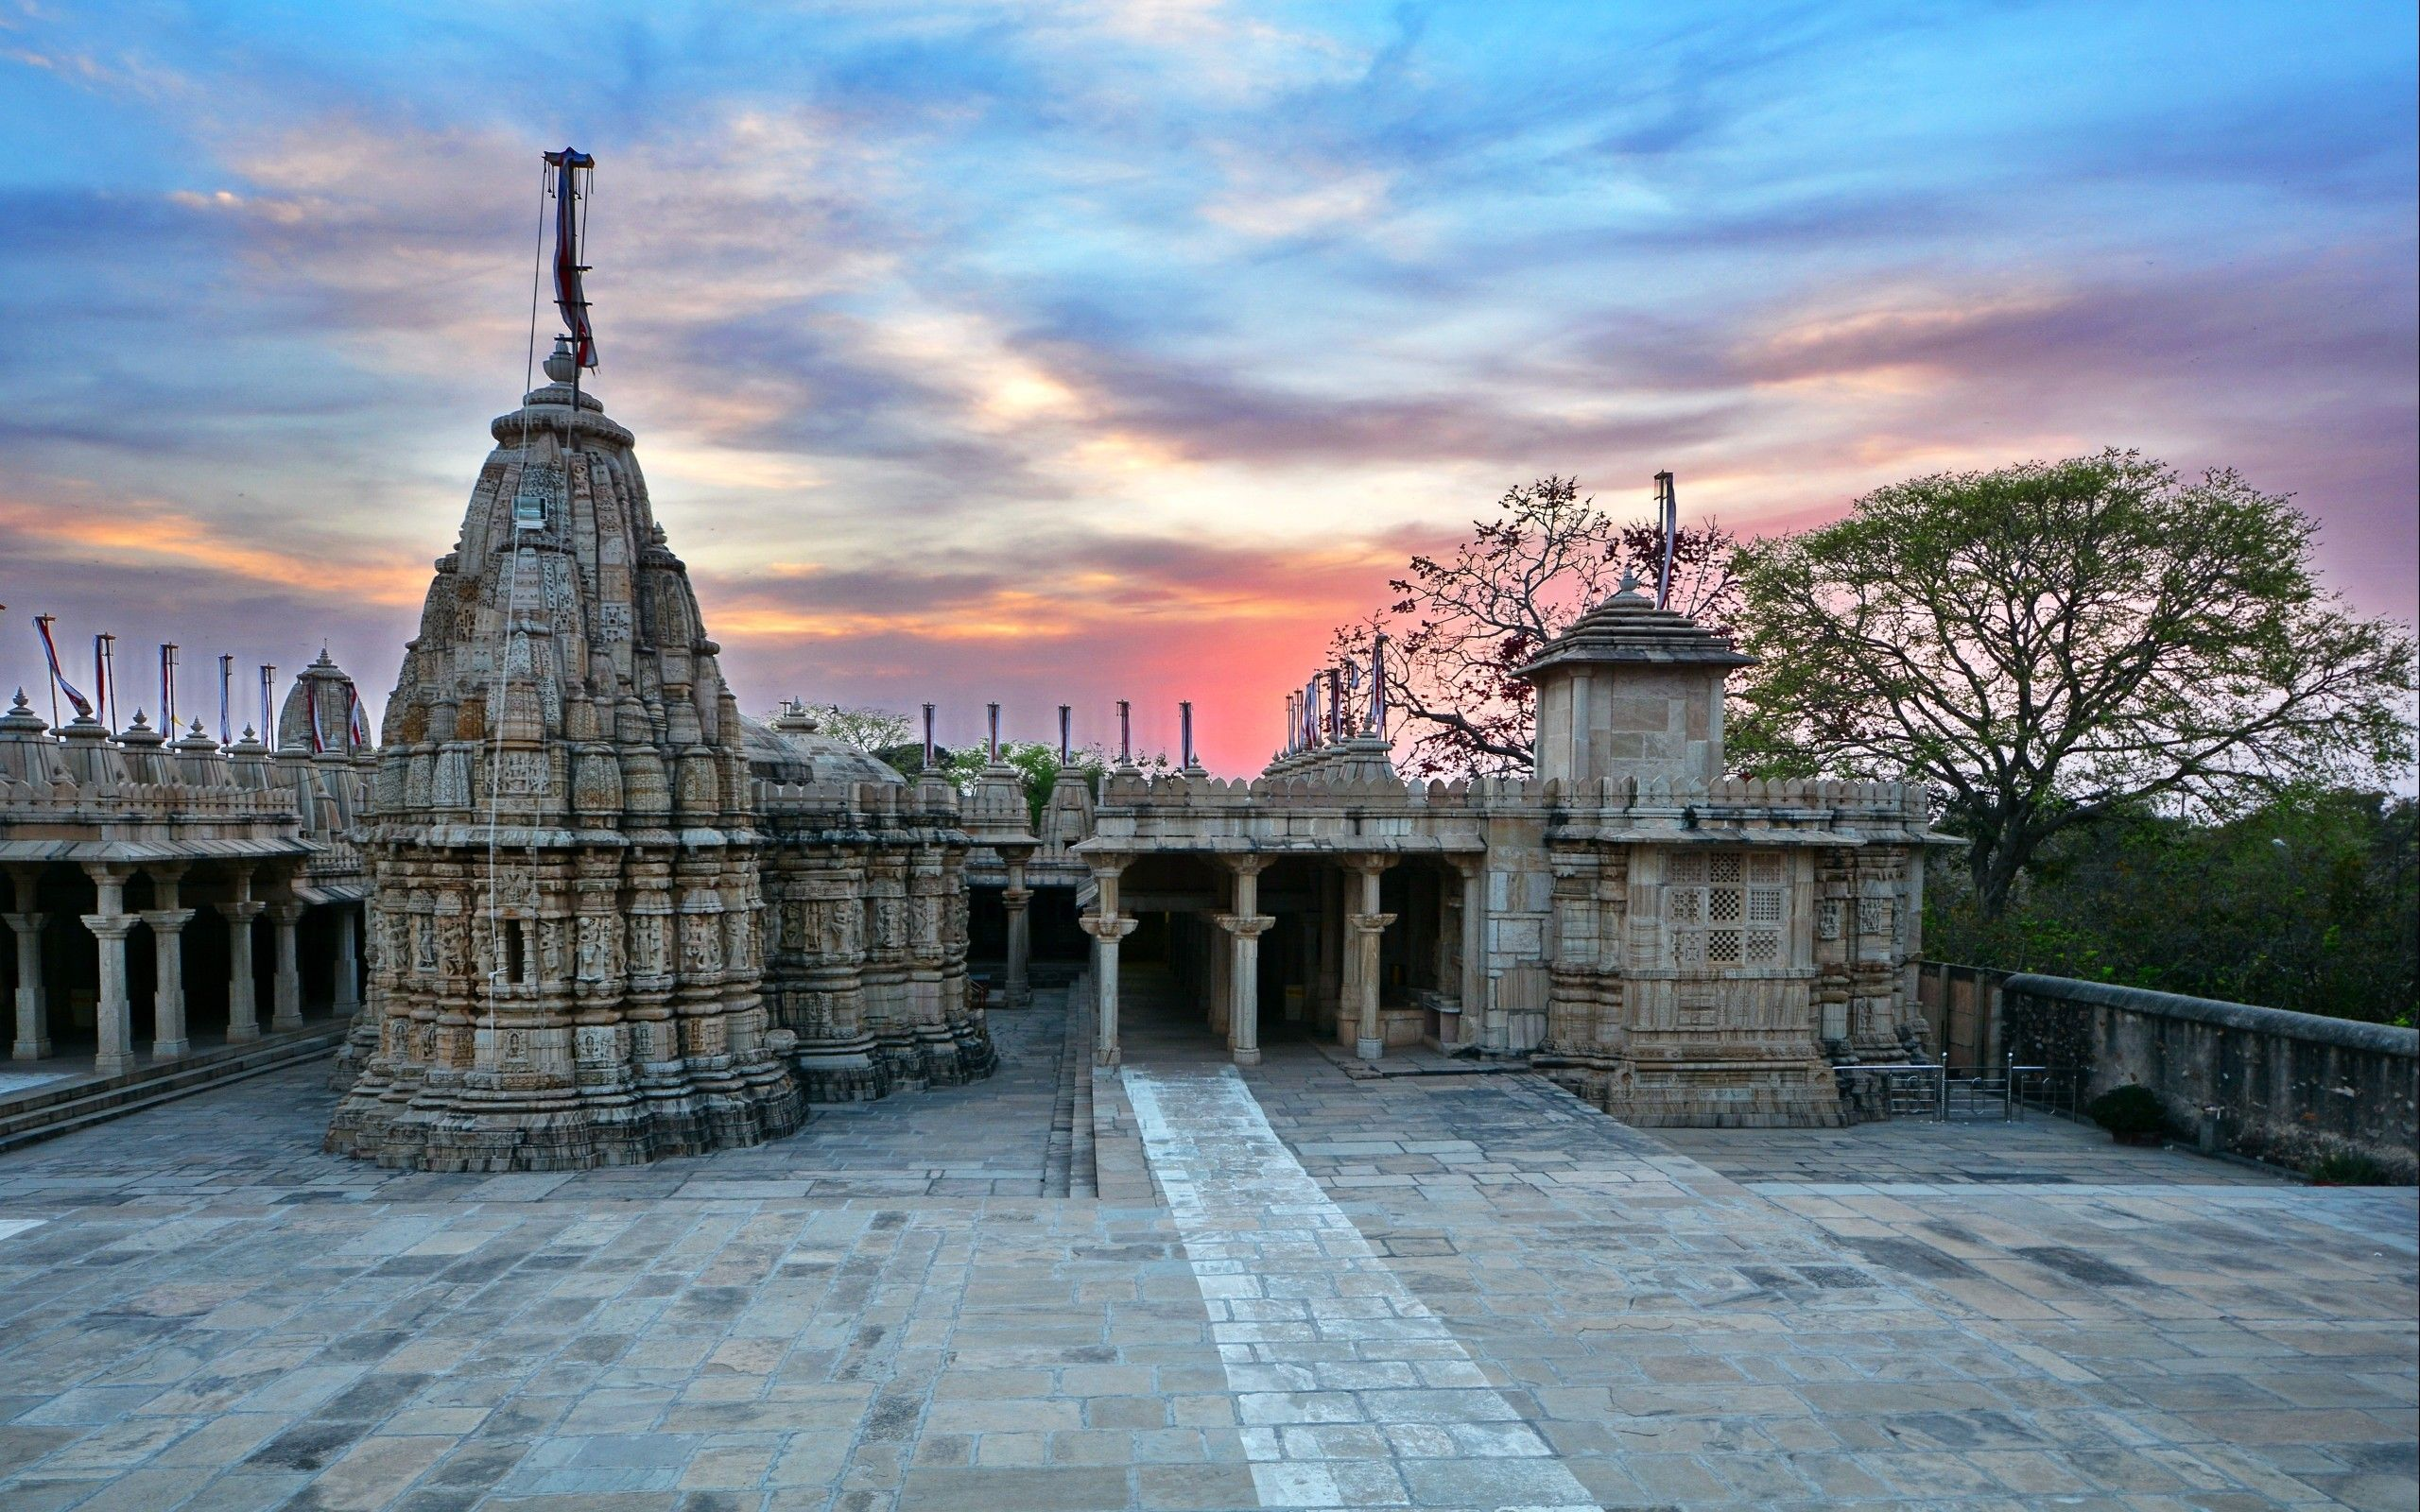 72 India Desktop Wallpapers On Wallpaperplay In 2020 Cool Places To Visit Indian Temple Architecture India